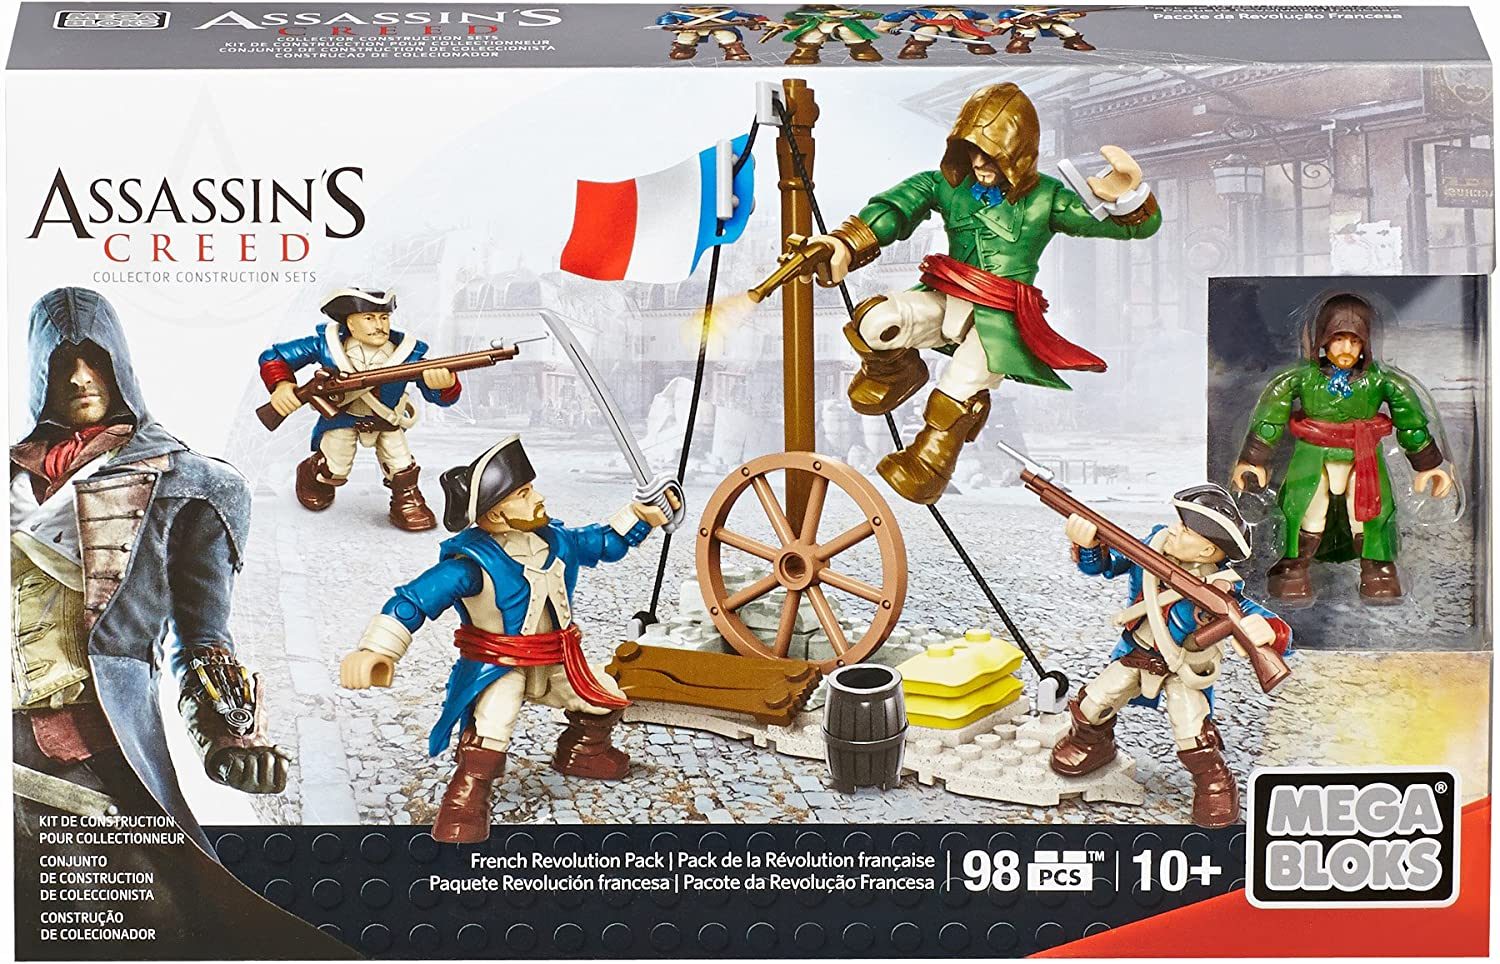 Mega Bloks Assassin's Creed French Revolution Pack